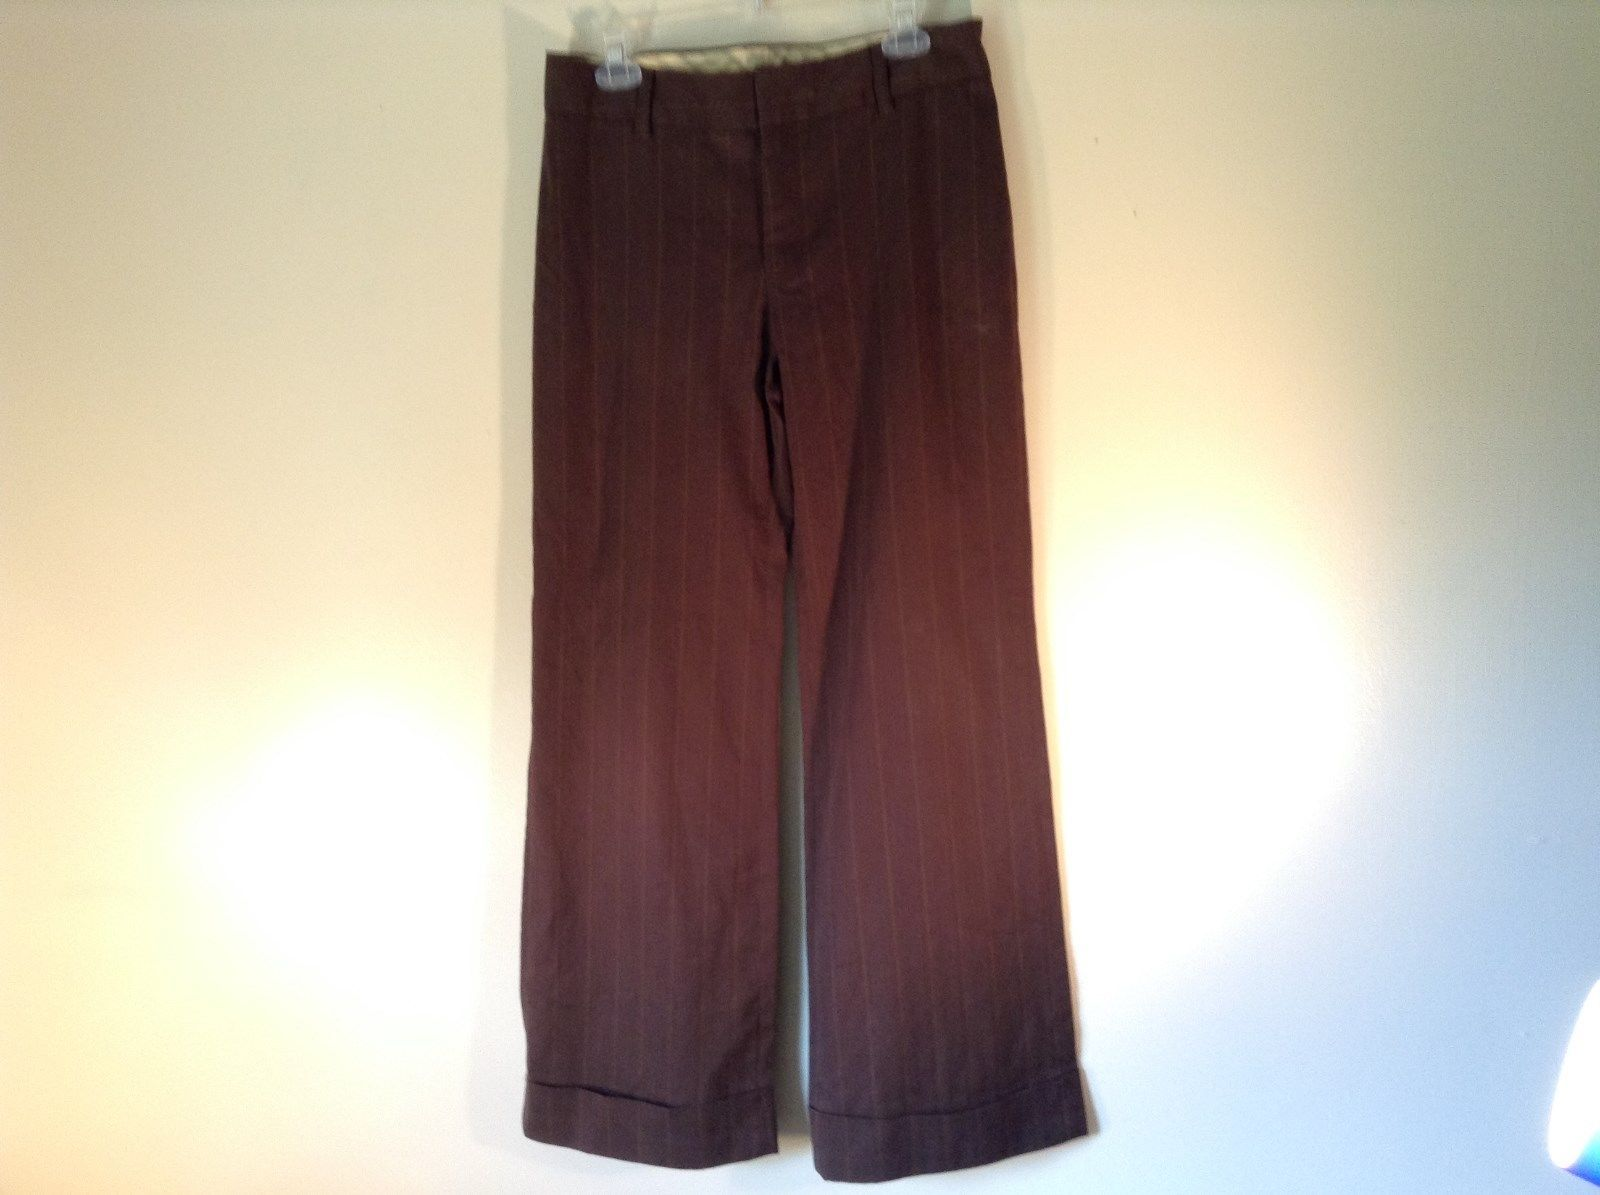 Size 8 Brown Casual Striped Pants GAP Cuffed Bottoms 2 Back Pockets Belt Loops